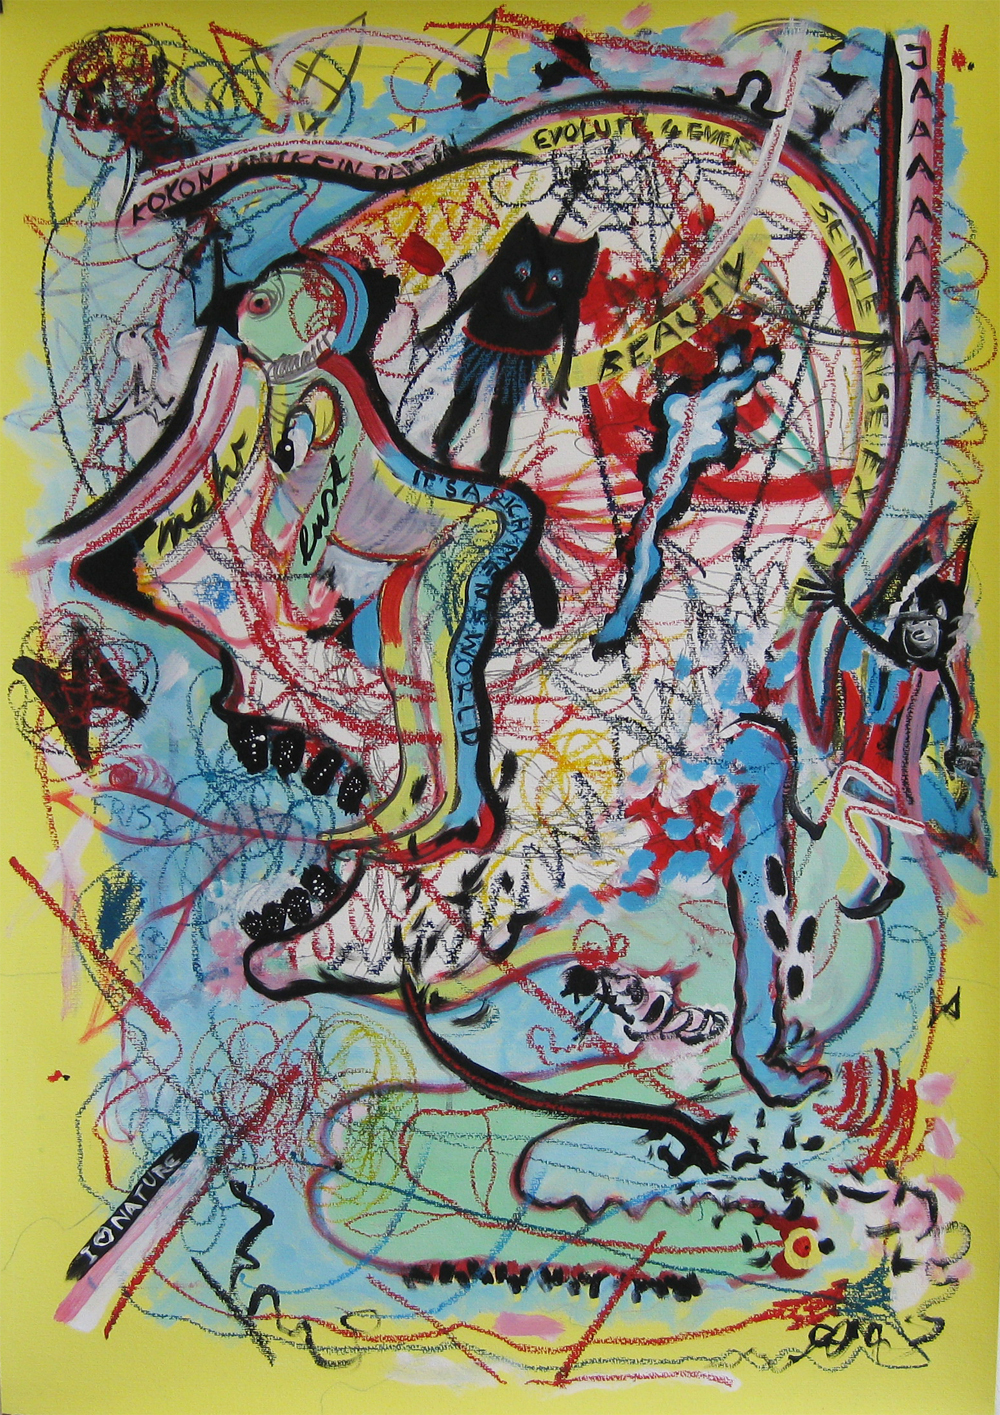 Raupe Nimmersatt  70 x 100  Mixed media on paper